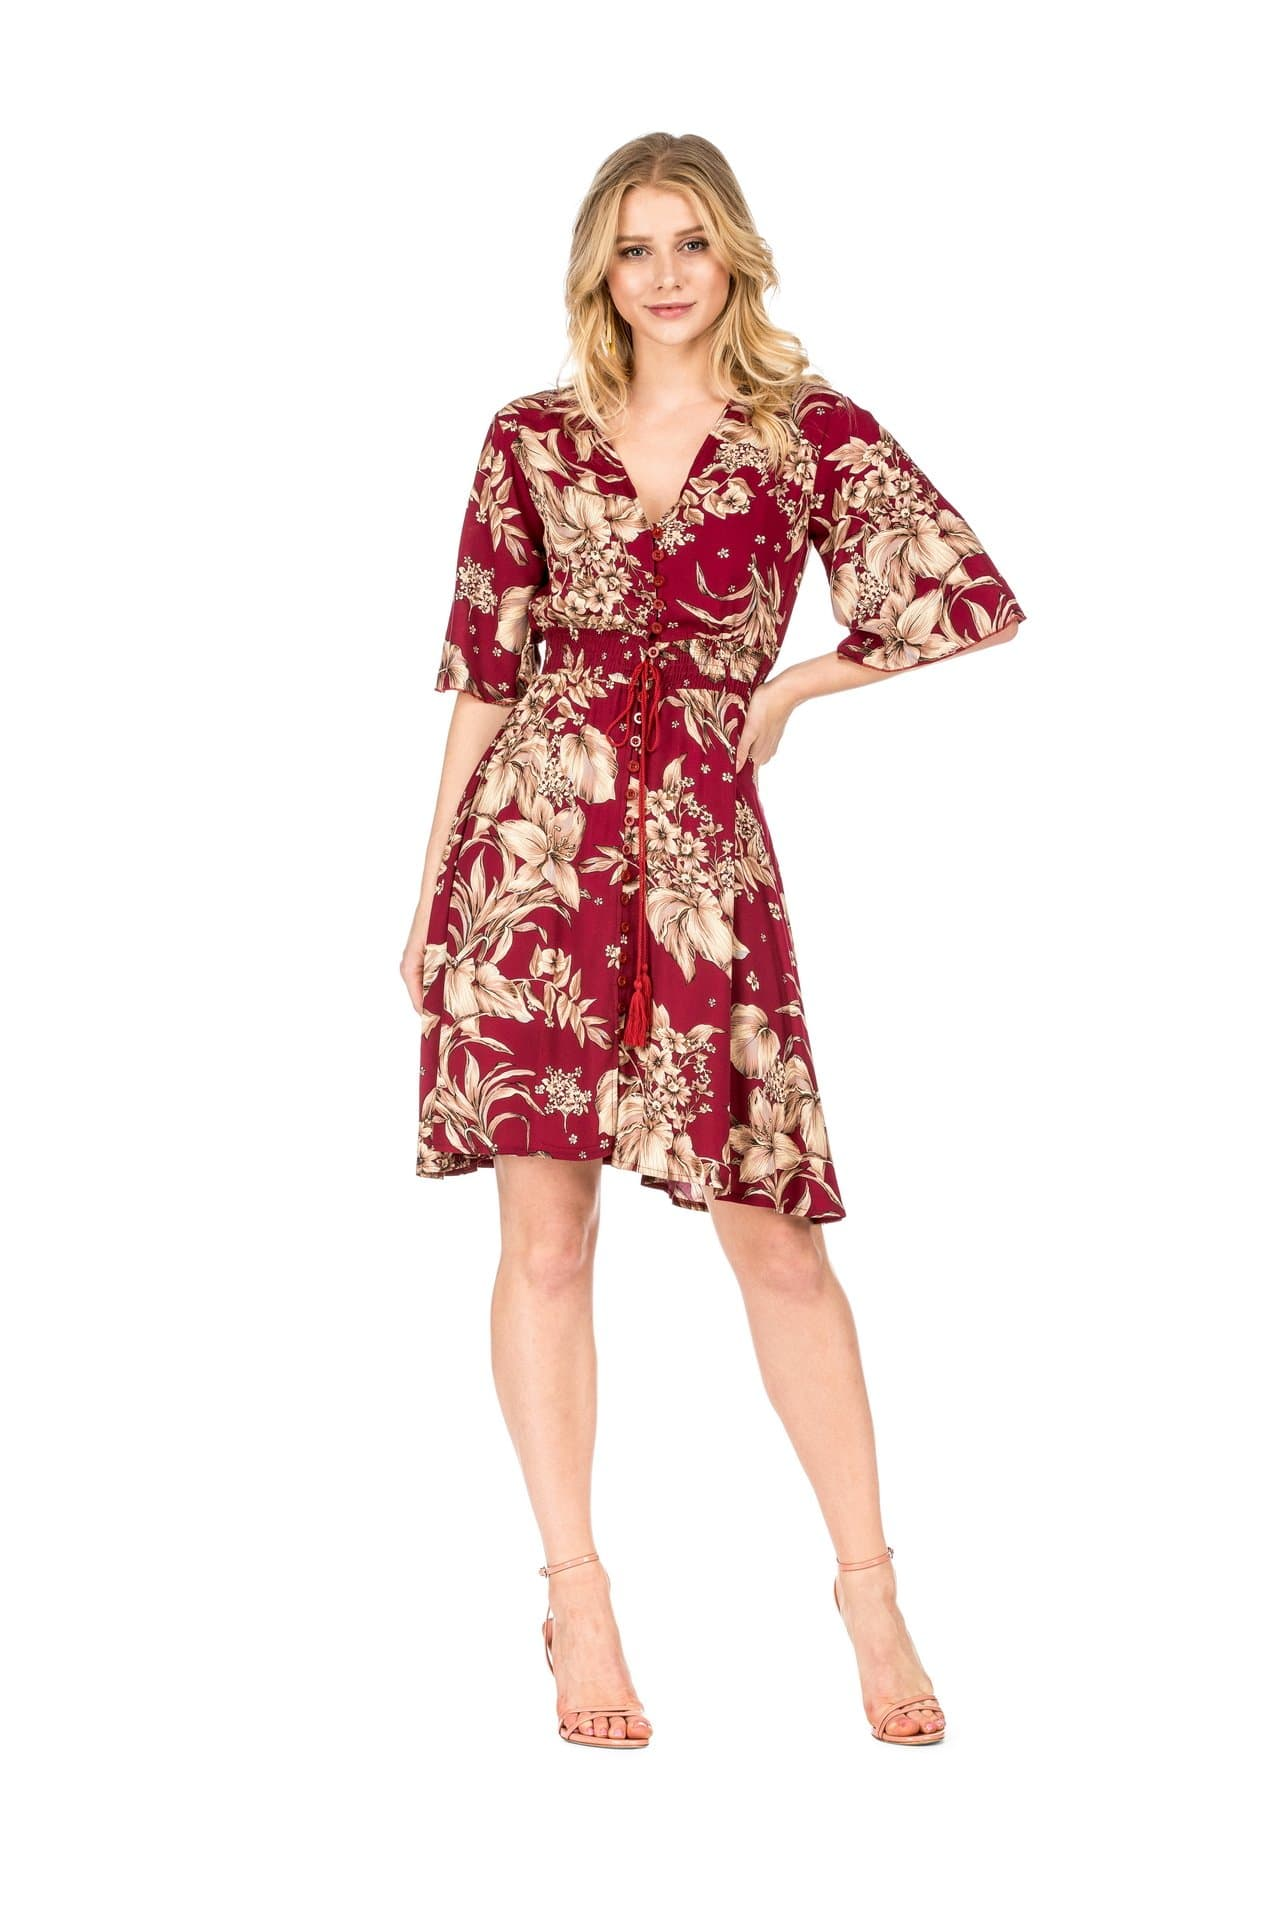 DAILYHAUTE Women's dress WINE / S Haute Edition Women's Button Up Floral Party Dress